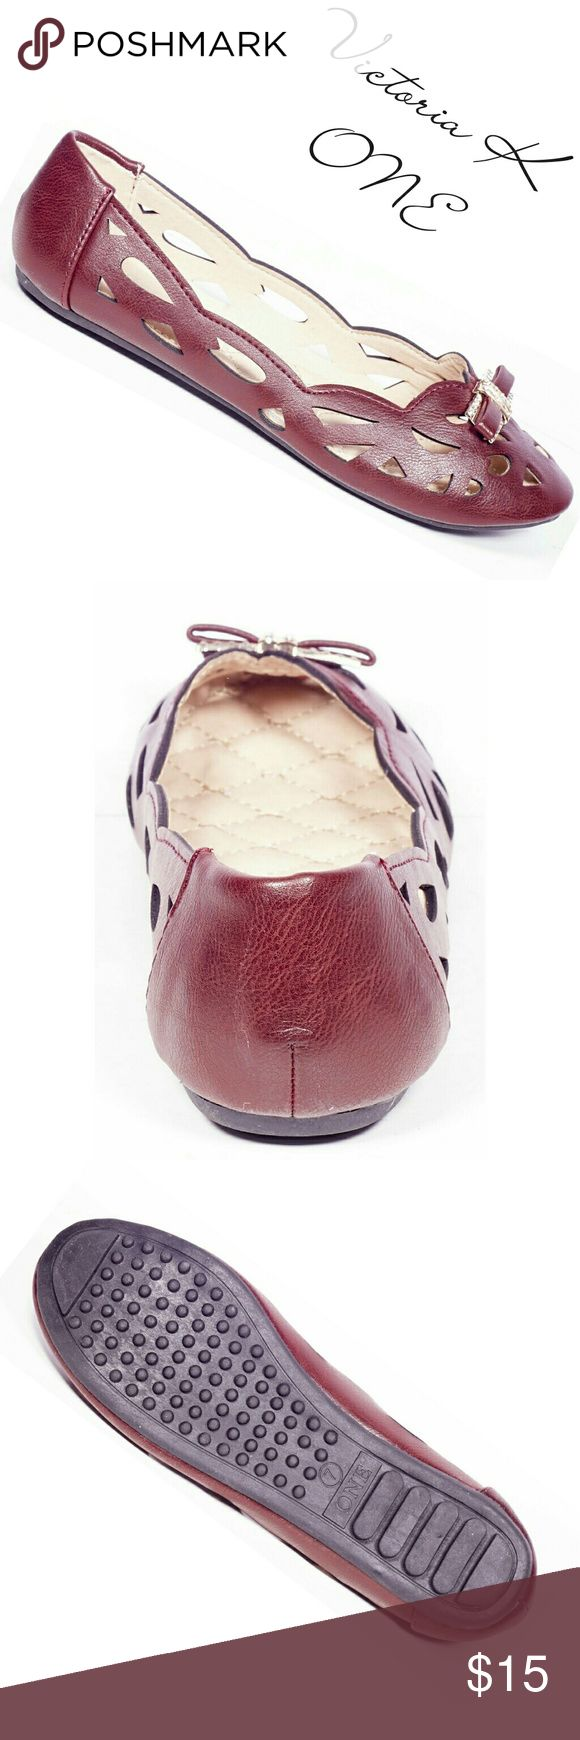 """Tory K Women Buckle Flats, b-2054, Wine Brand new Victoria K gorgeous perforated woman ballerina flats in PU leather with a stylish sparkly bow shaped buckle in the front. From the ONE collection. Soft cushioned sole, very comfortable. Bubbled bottom sole for extra traction.  A true staple in ladies shoes fashion! Measurements: size 7 measures 9.5 inches, sz 7.5 - 9 3/4"""", sz 8 - 10"""", sz 8.5 - 10 1/4"""", sz 9 - 10.5"""", all half sizes are in 1/4 inch increments of each other. Tory K  Shoes Flats…"""